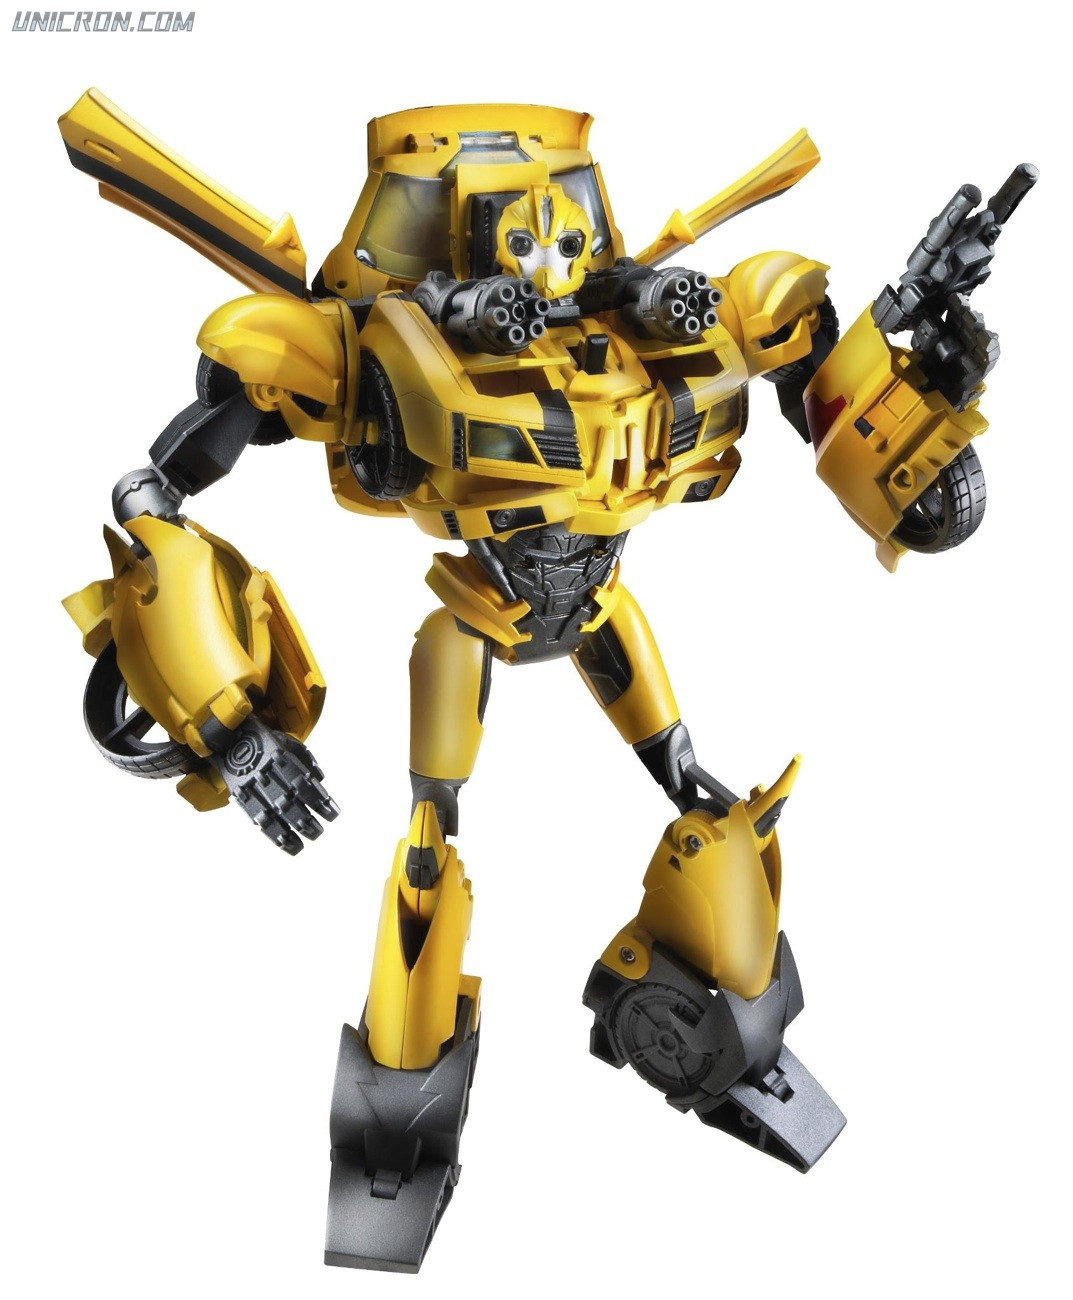 Transformers Prime Bumblebee (Weaponizer) toy